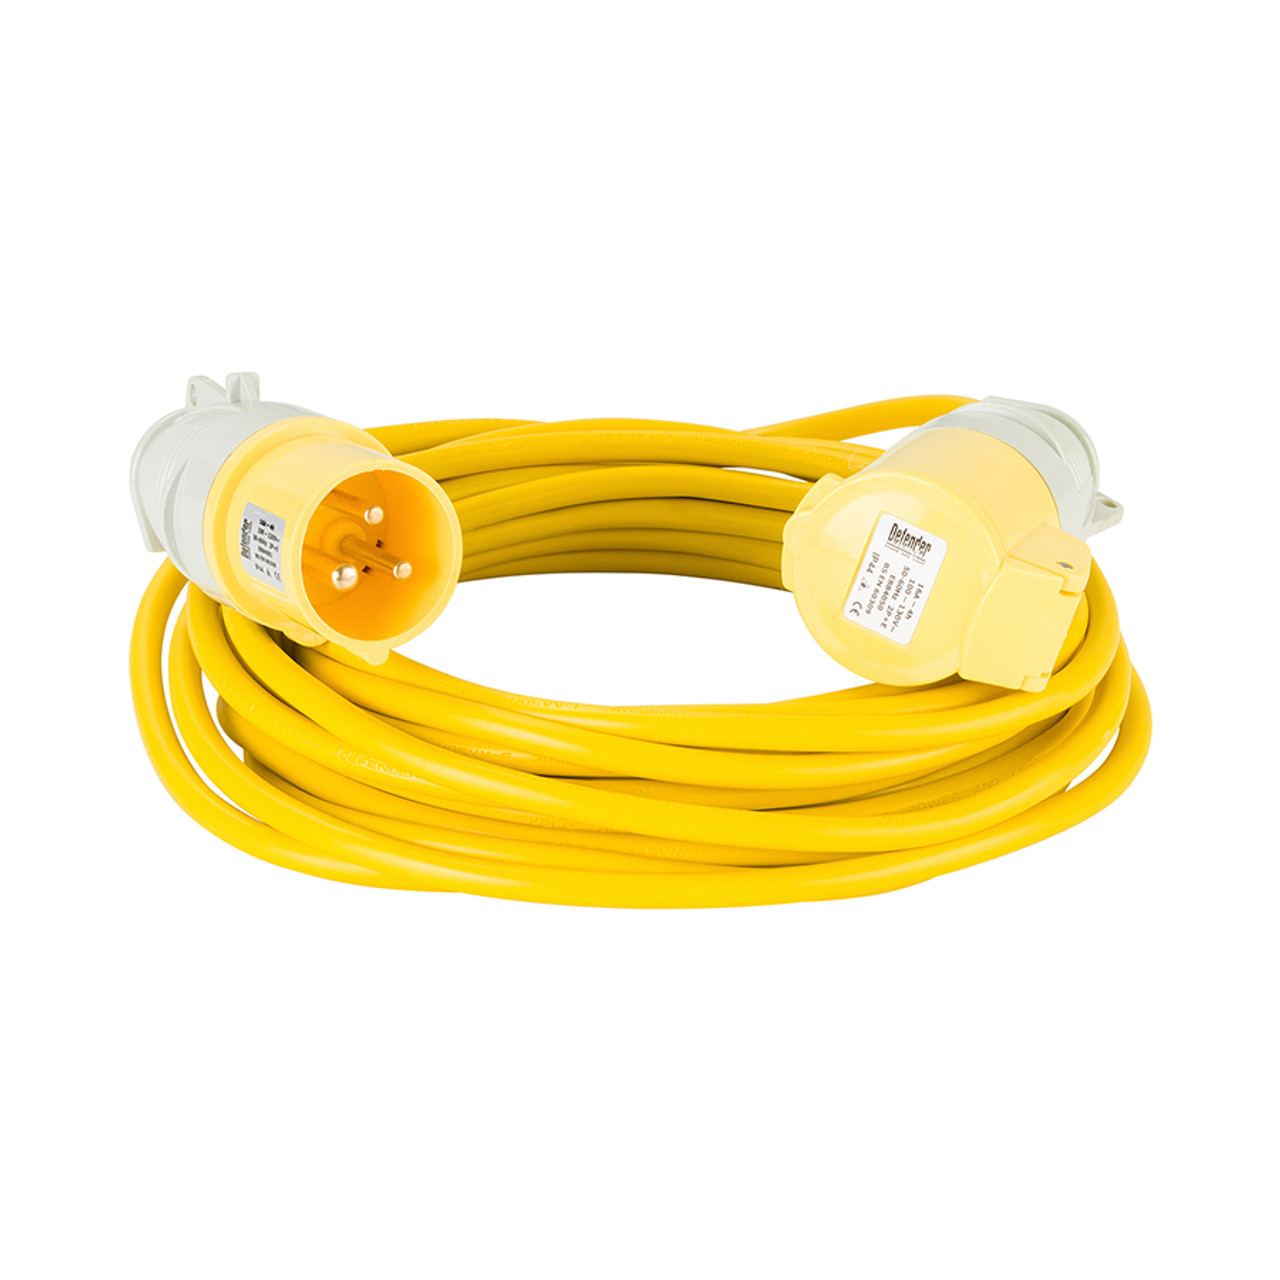 Defender 10M Extension Lead - 16A 1 5mm Cable - Yellow 110V